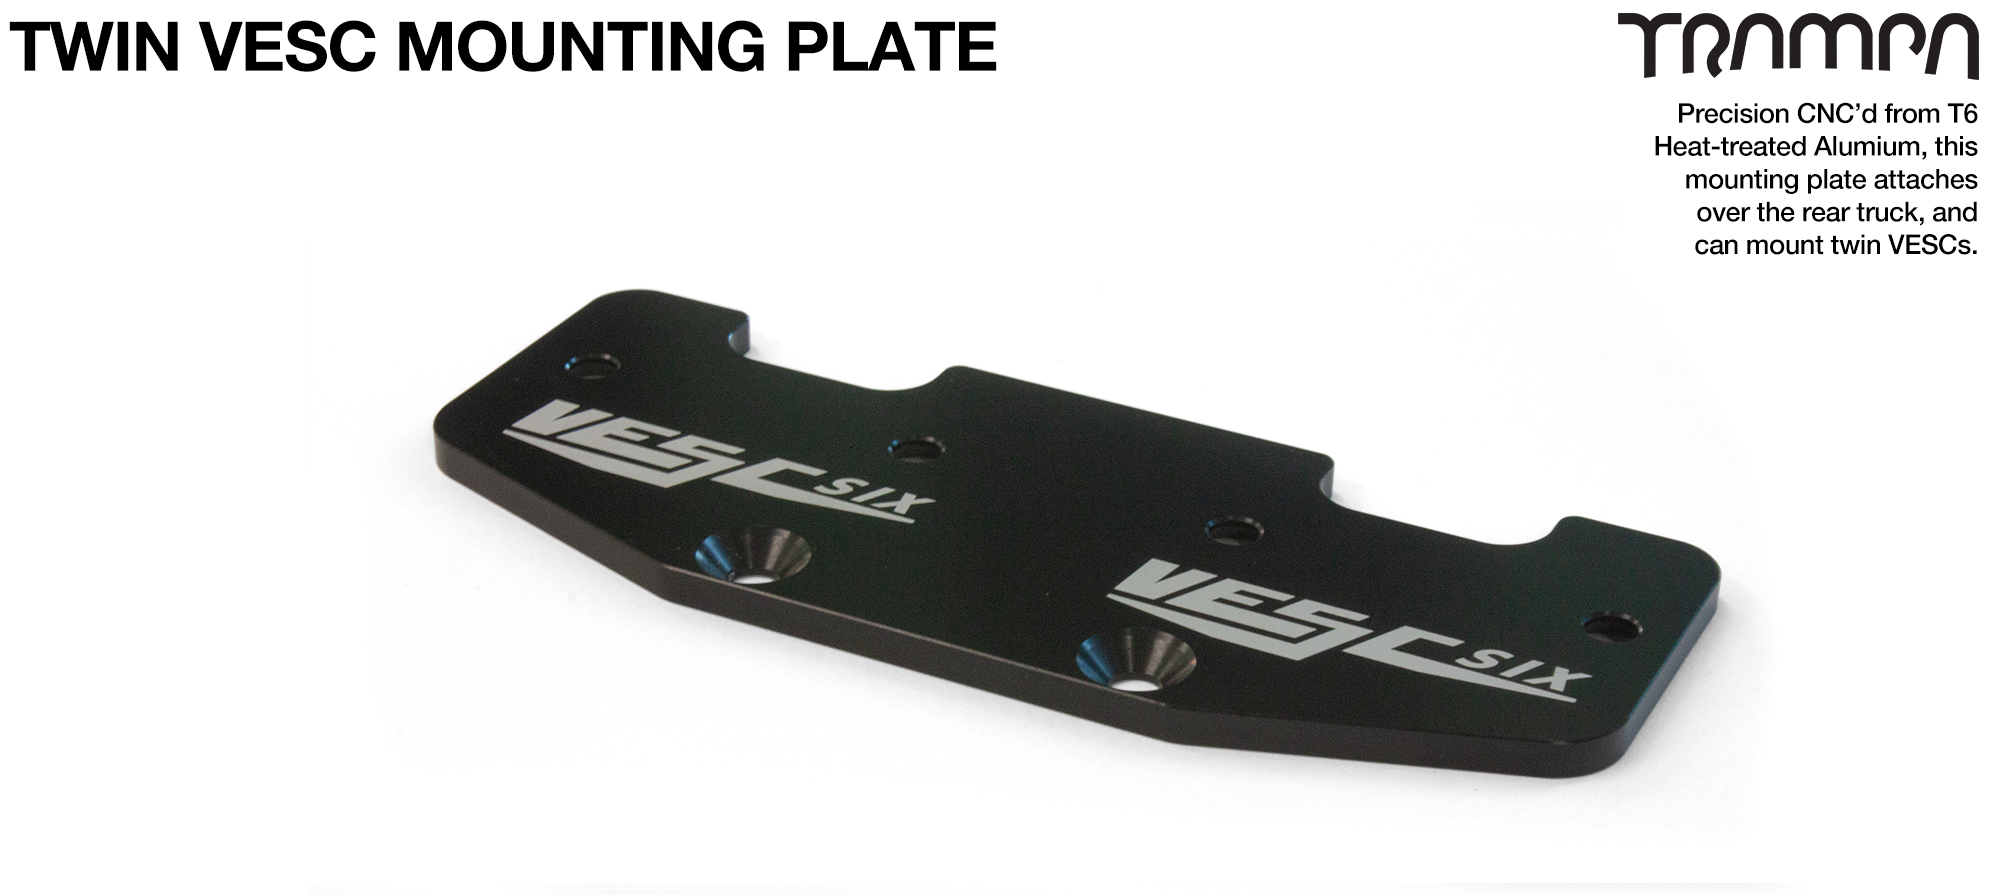 Yes please supply me with 2x TWIN ALUMINIUM VESC mounting plates (+£25)